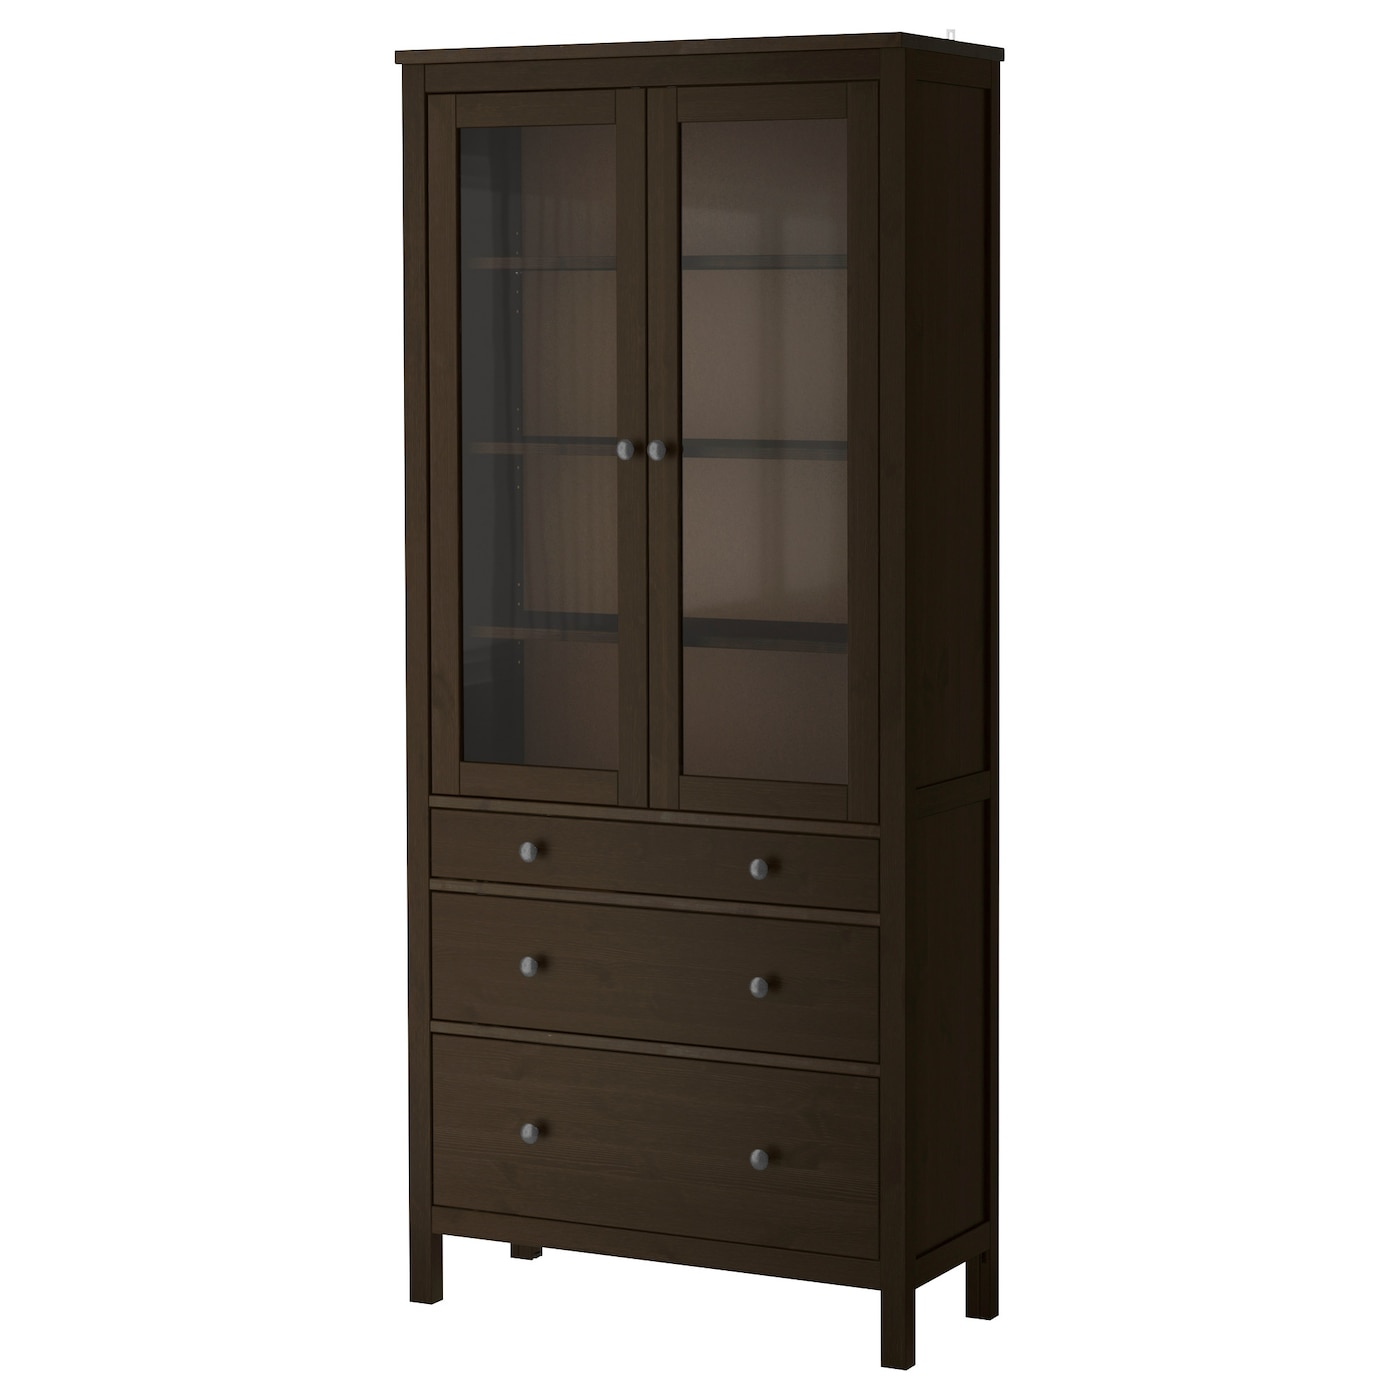 Hemnes glass door cabinet with 3 drawers black brown - Ikea cabinet doors on existing cabinets ...